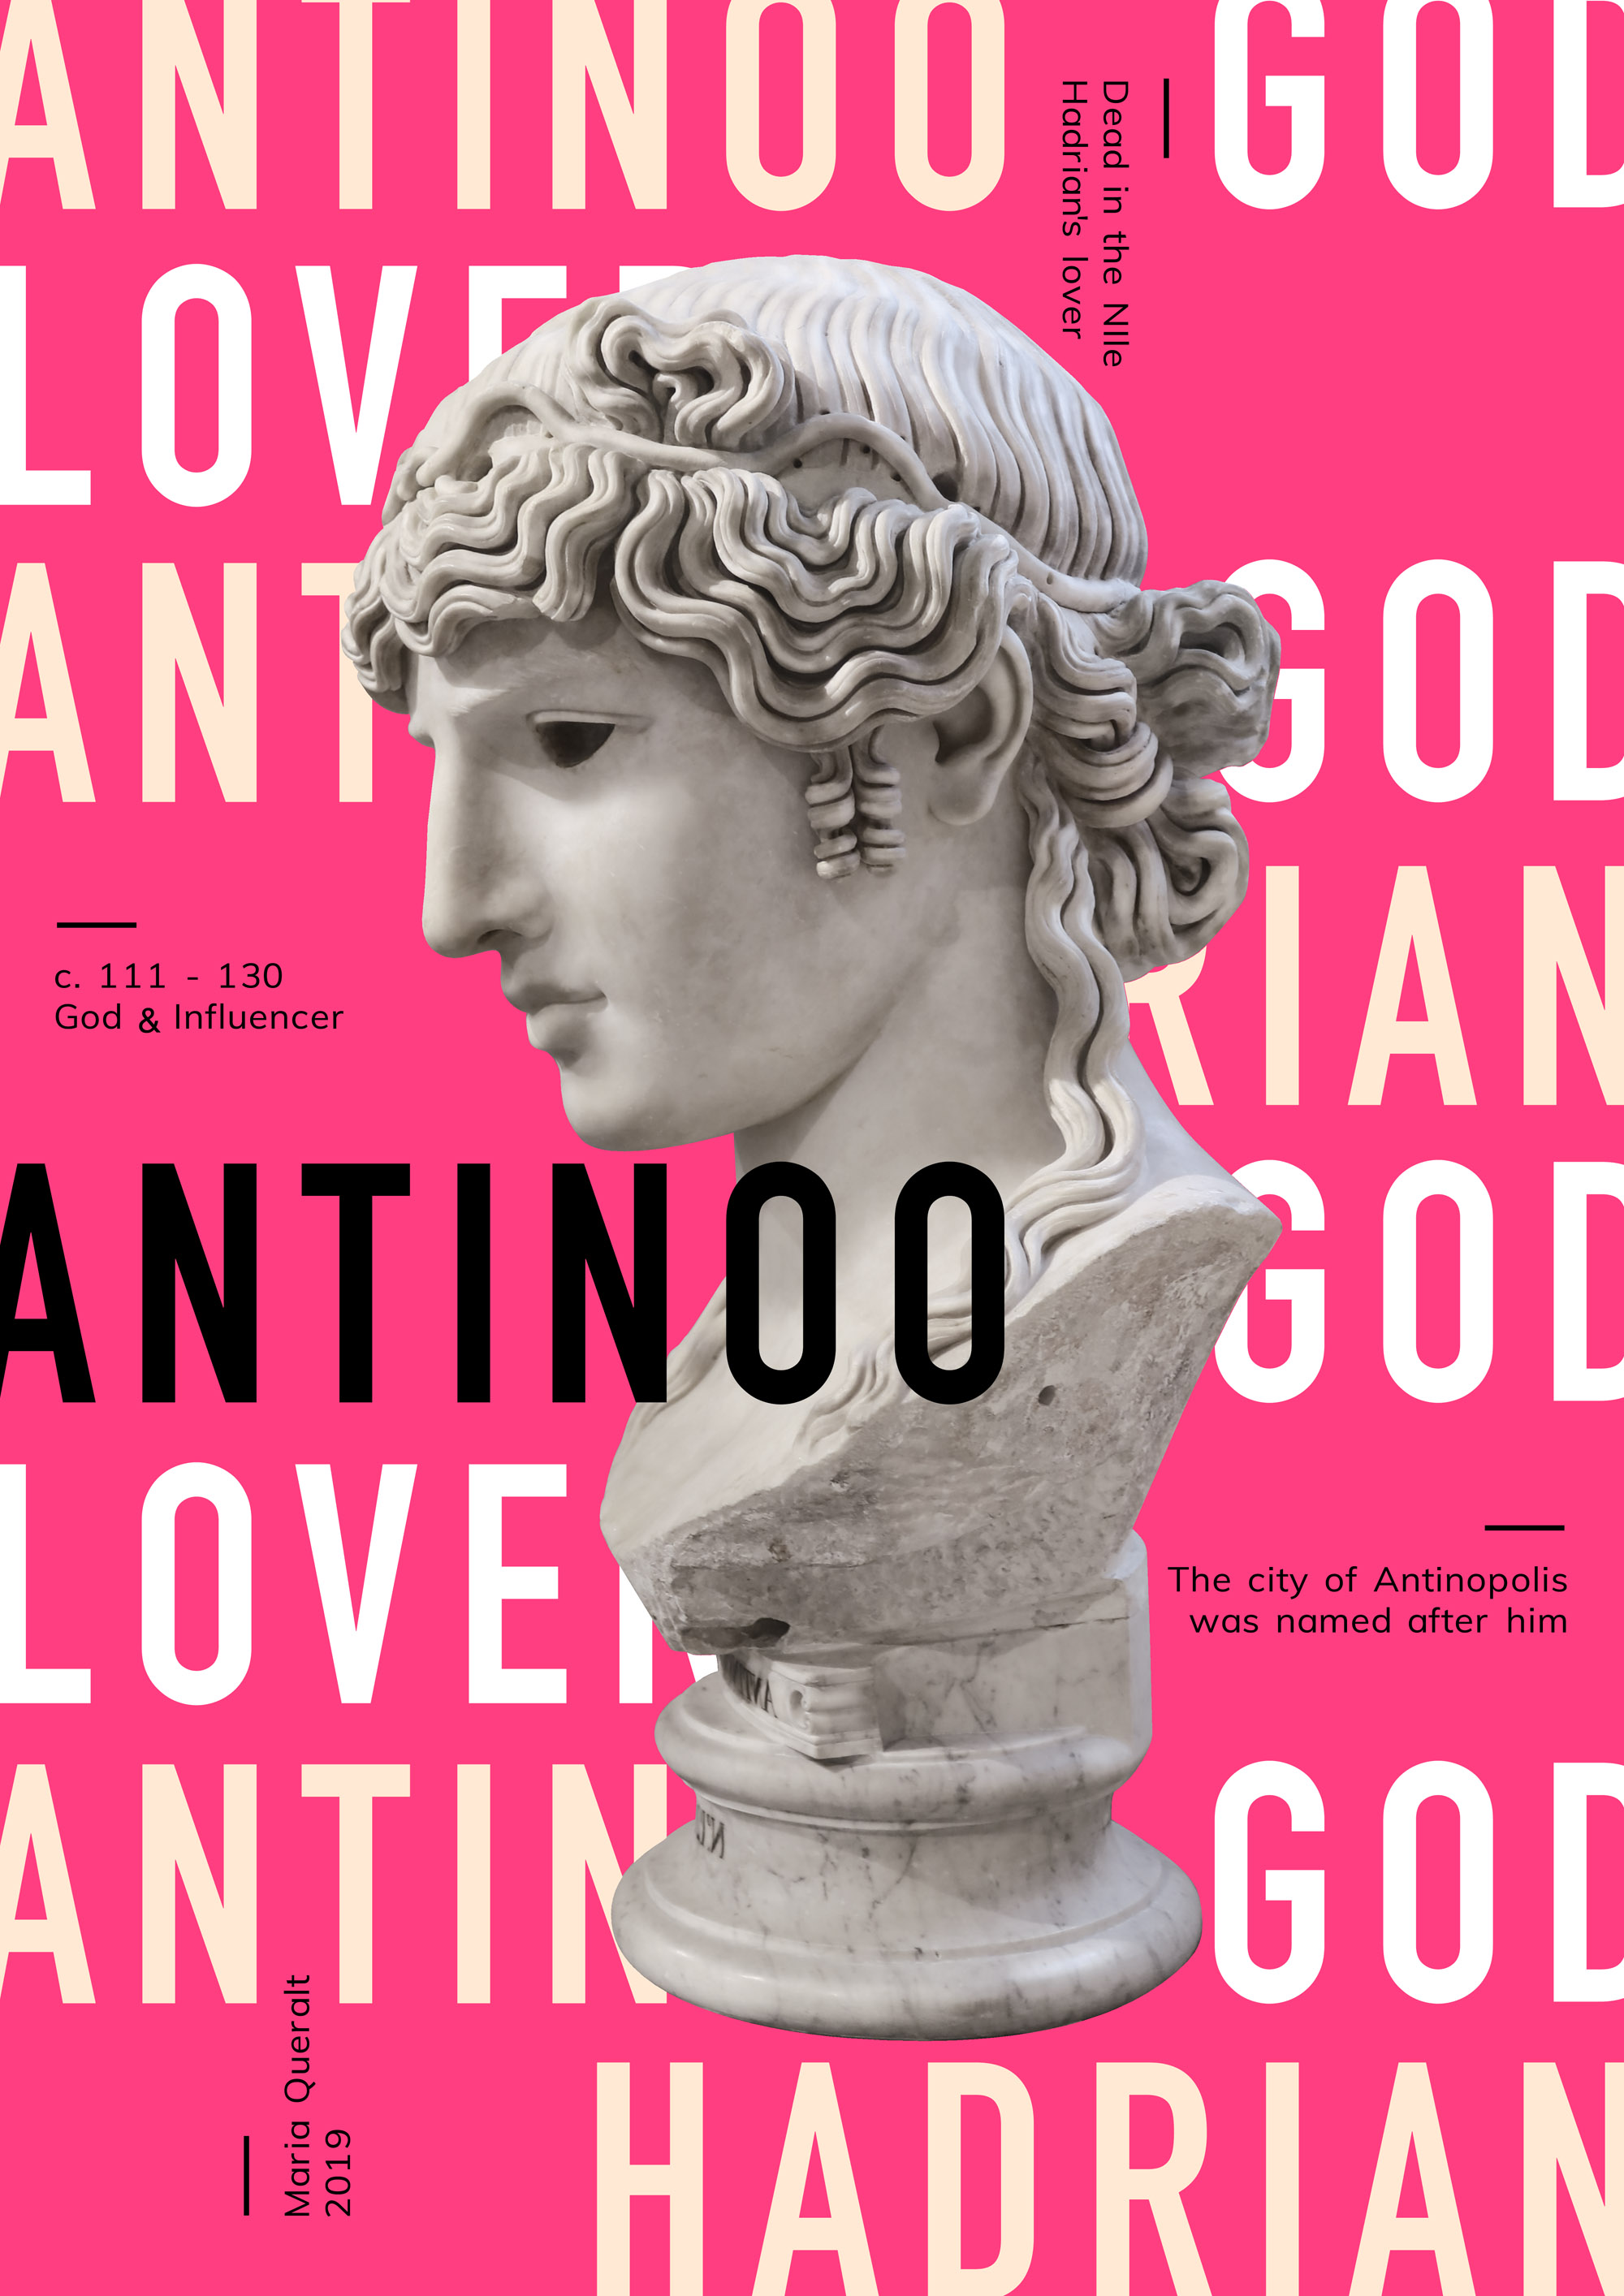 Poster of the Sculpture of Antinous Mondragone, Part of the Ancient Influencers Photography series by Maria Queralt. Photography, design and art direction by Maria Queralt